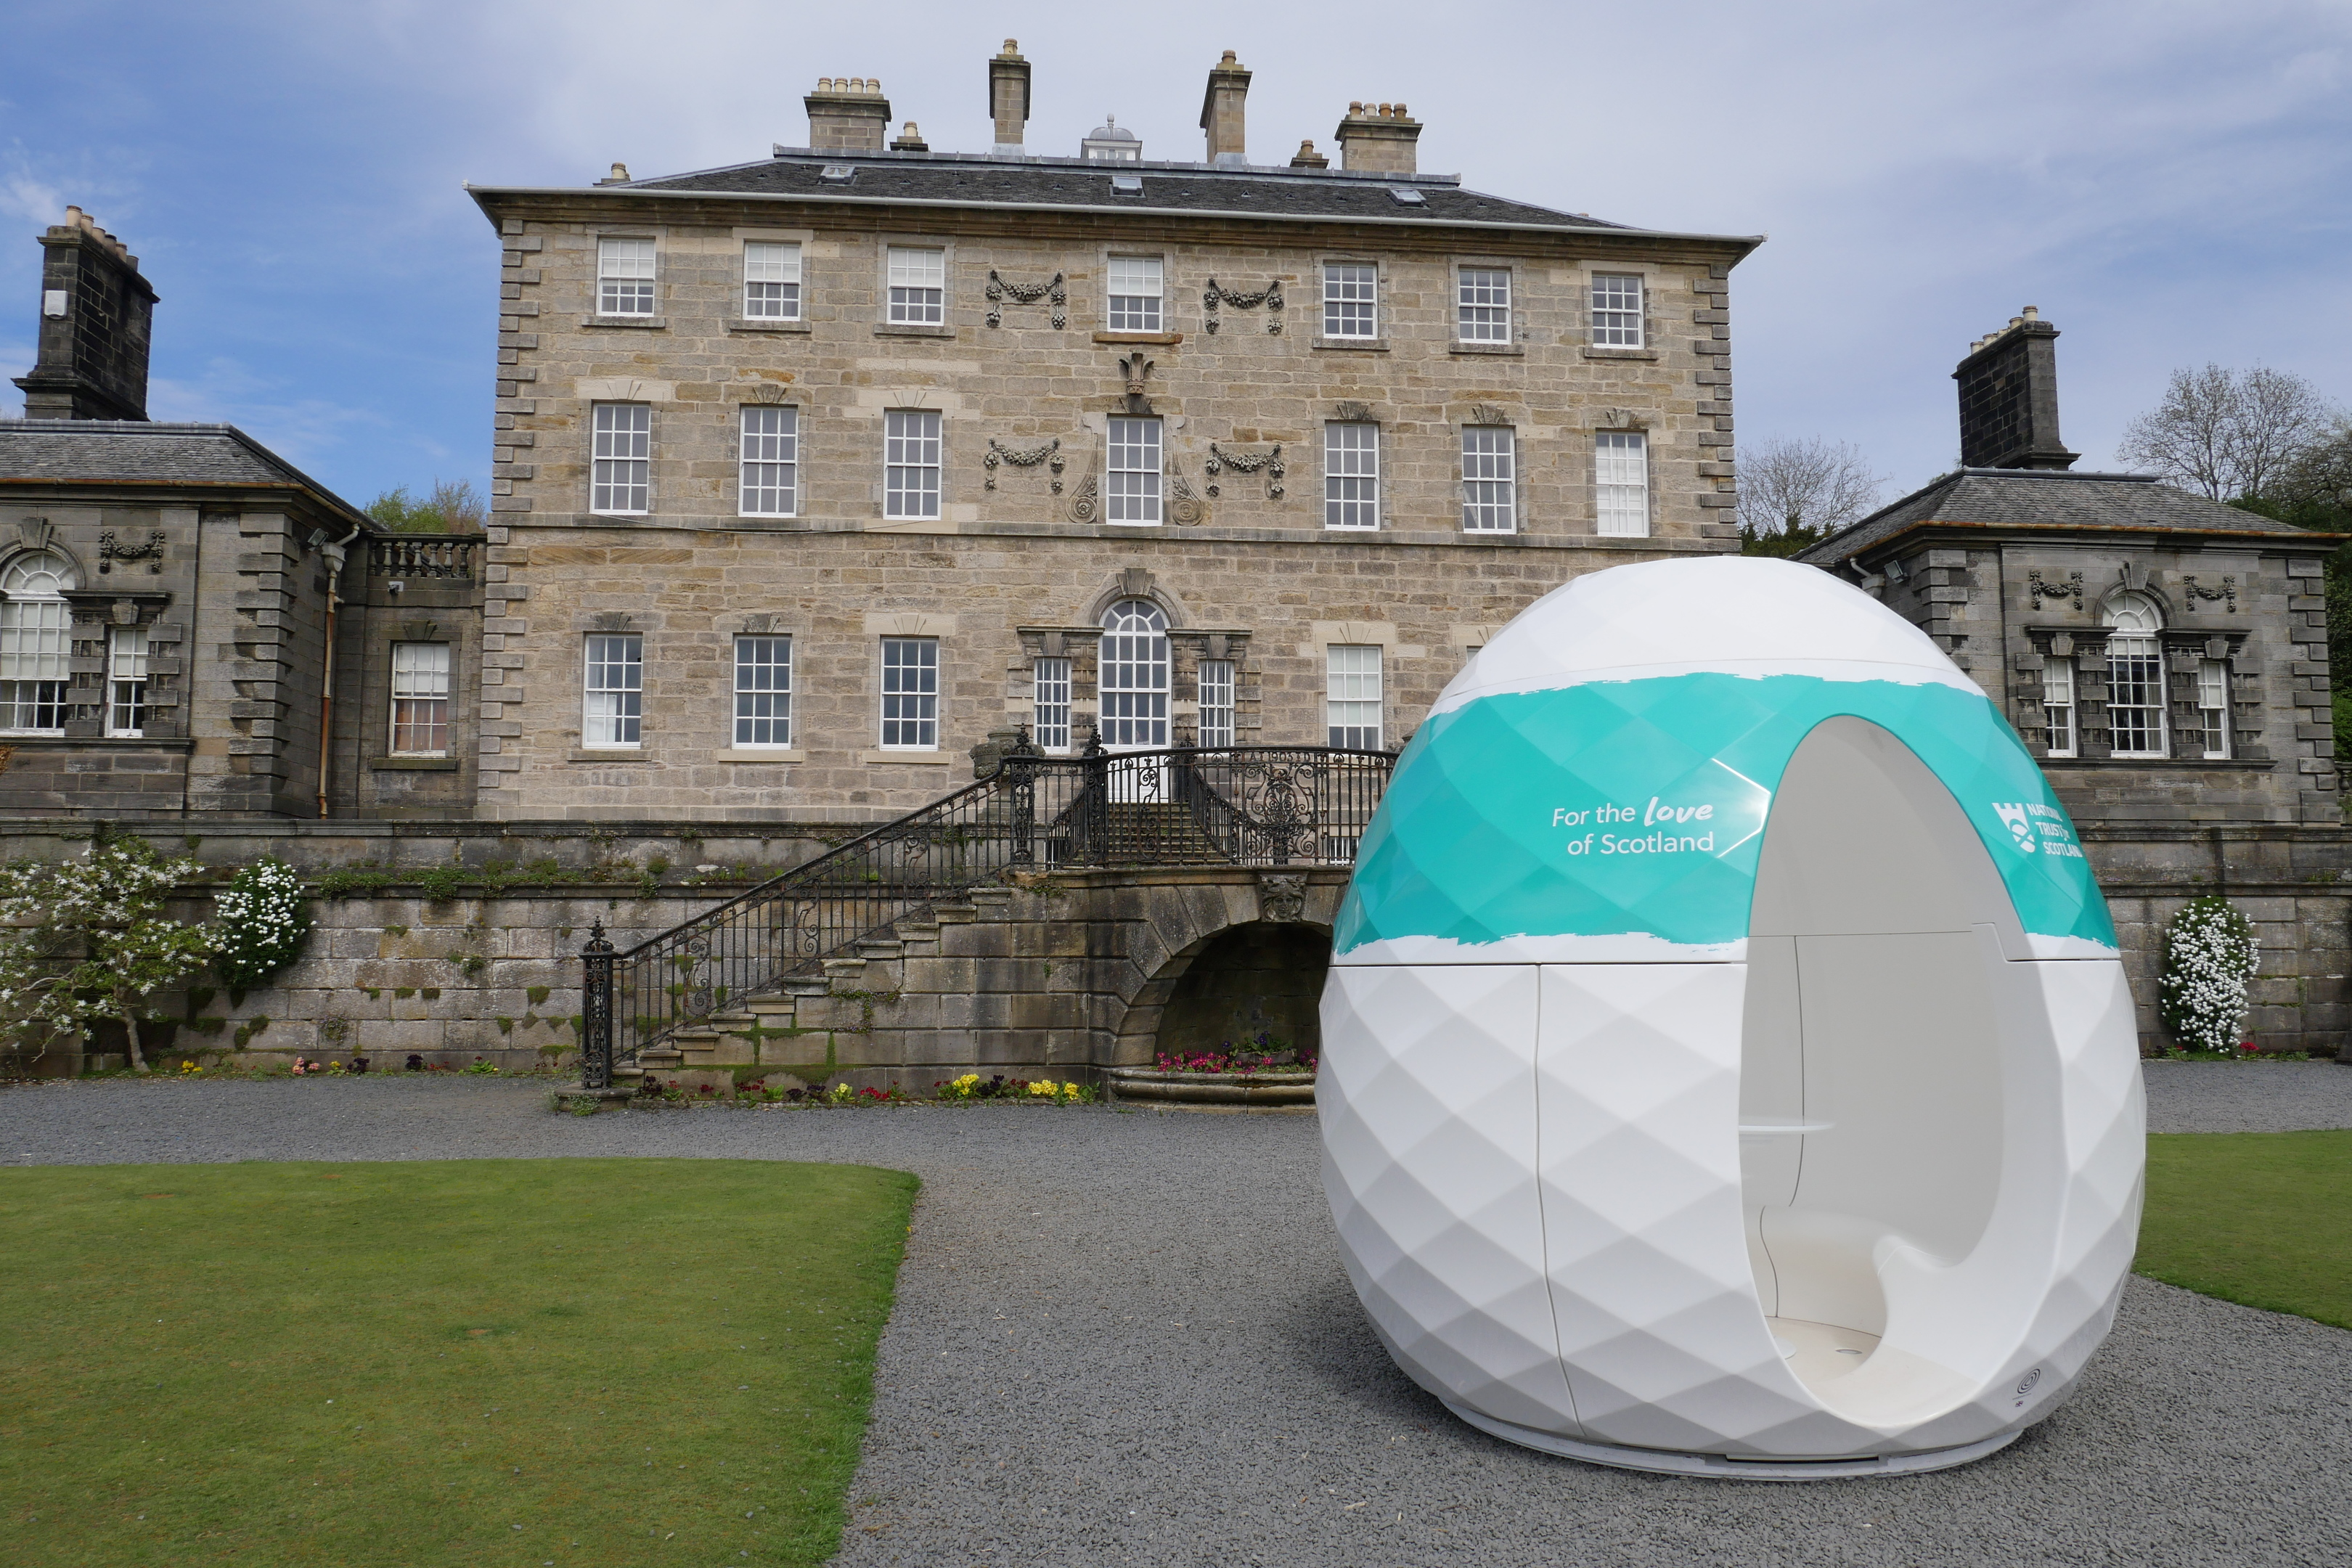 It may resemble something from The Day The Earth Stood Still, but journey to the centre of the pod to find out what people love most about Scotland.